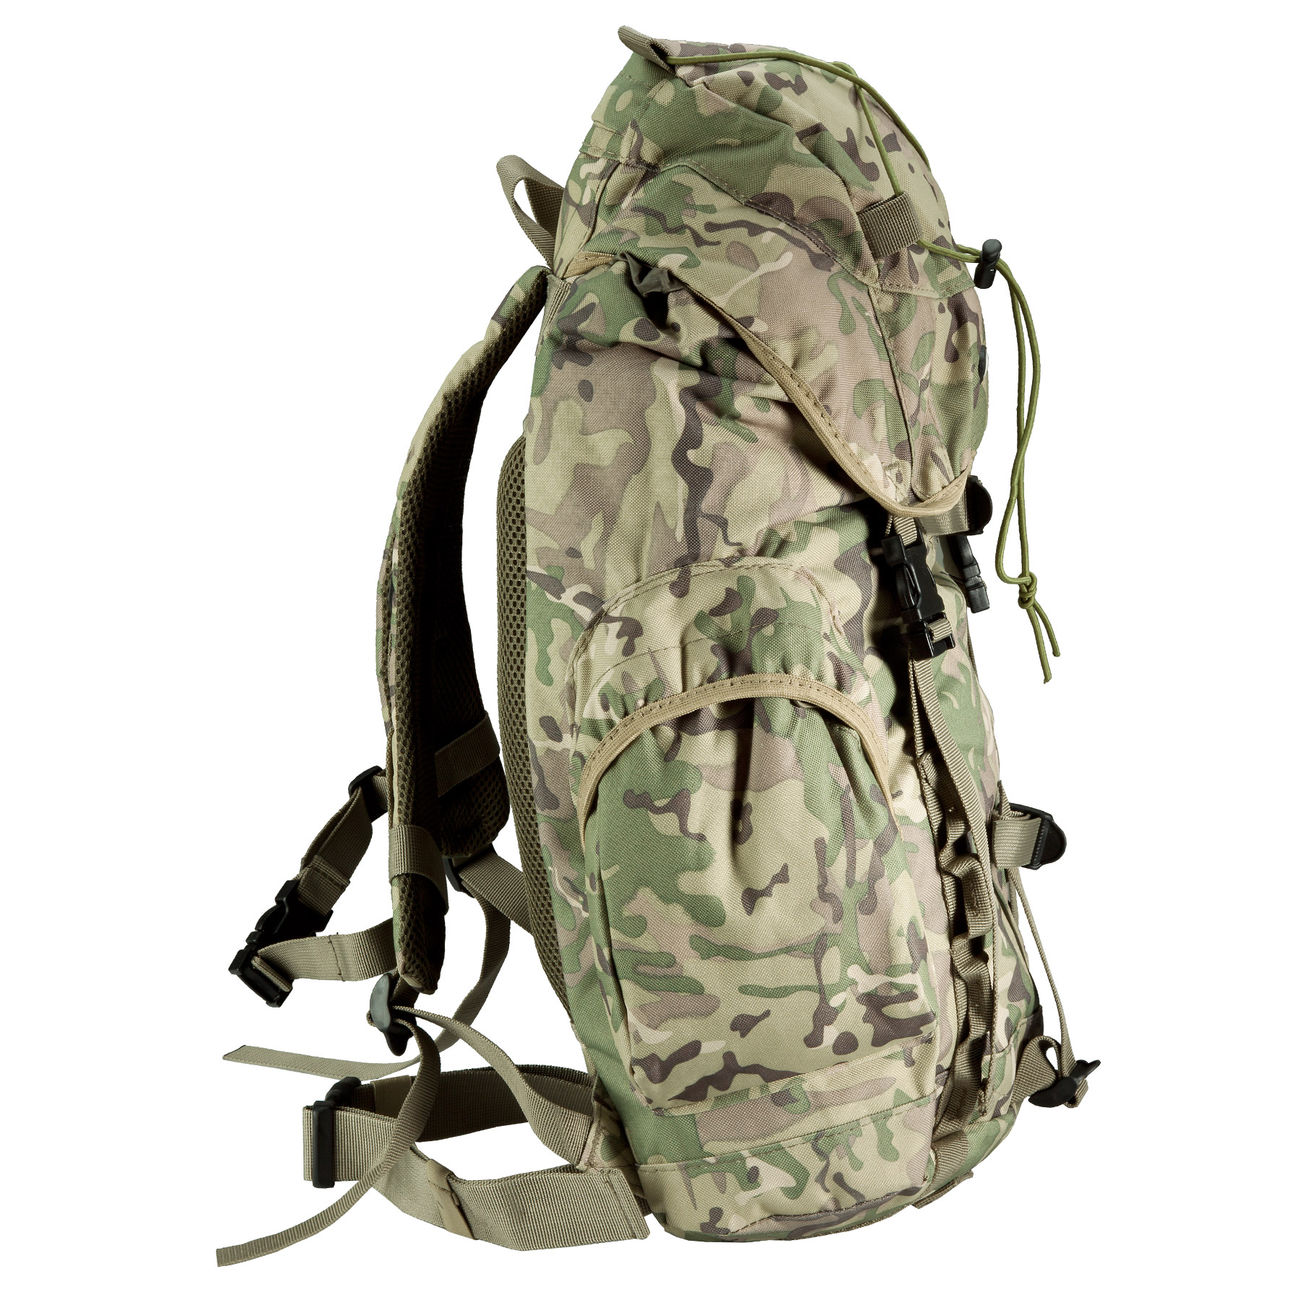 MFH Rucksack Recon III operation-camo 2